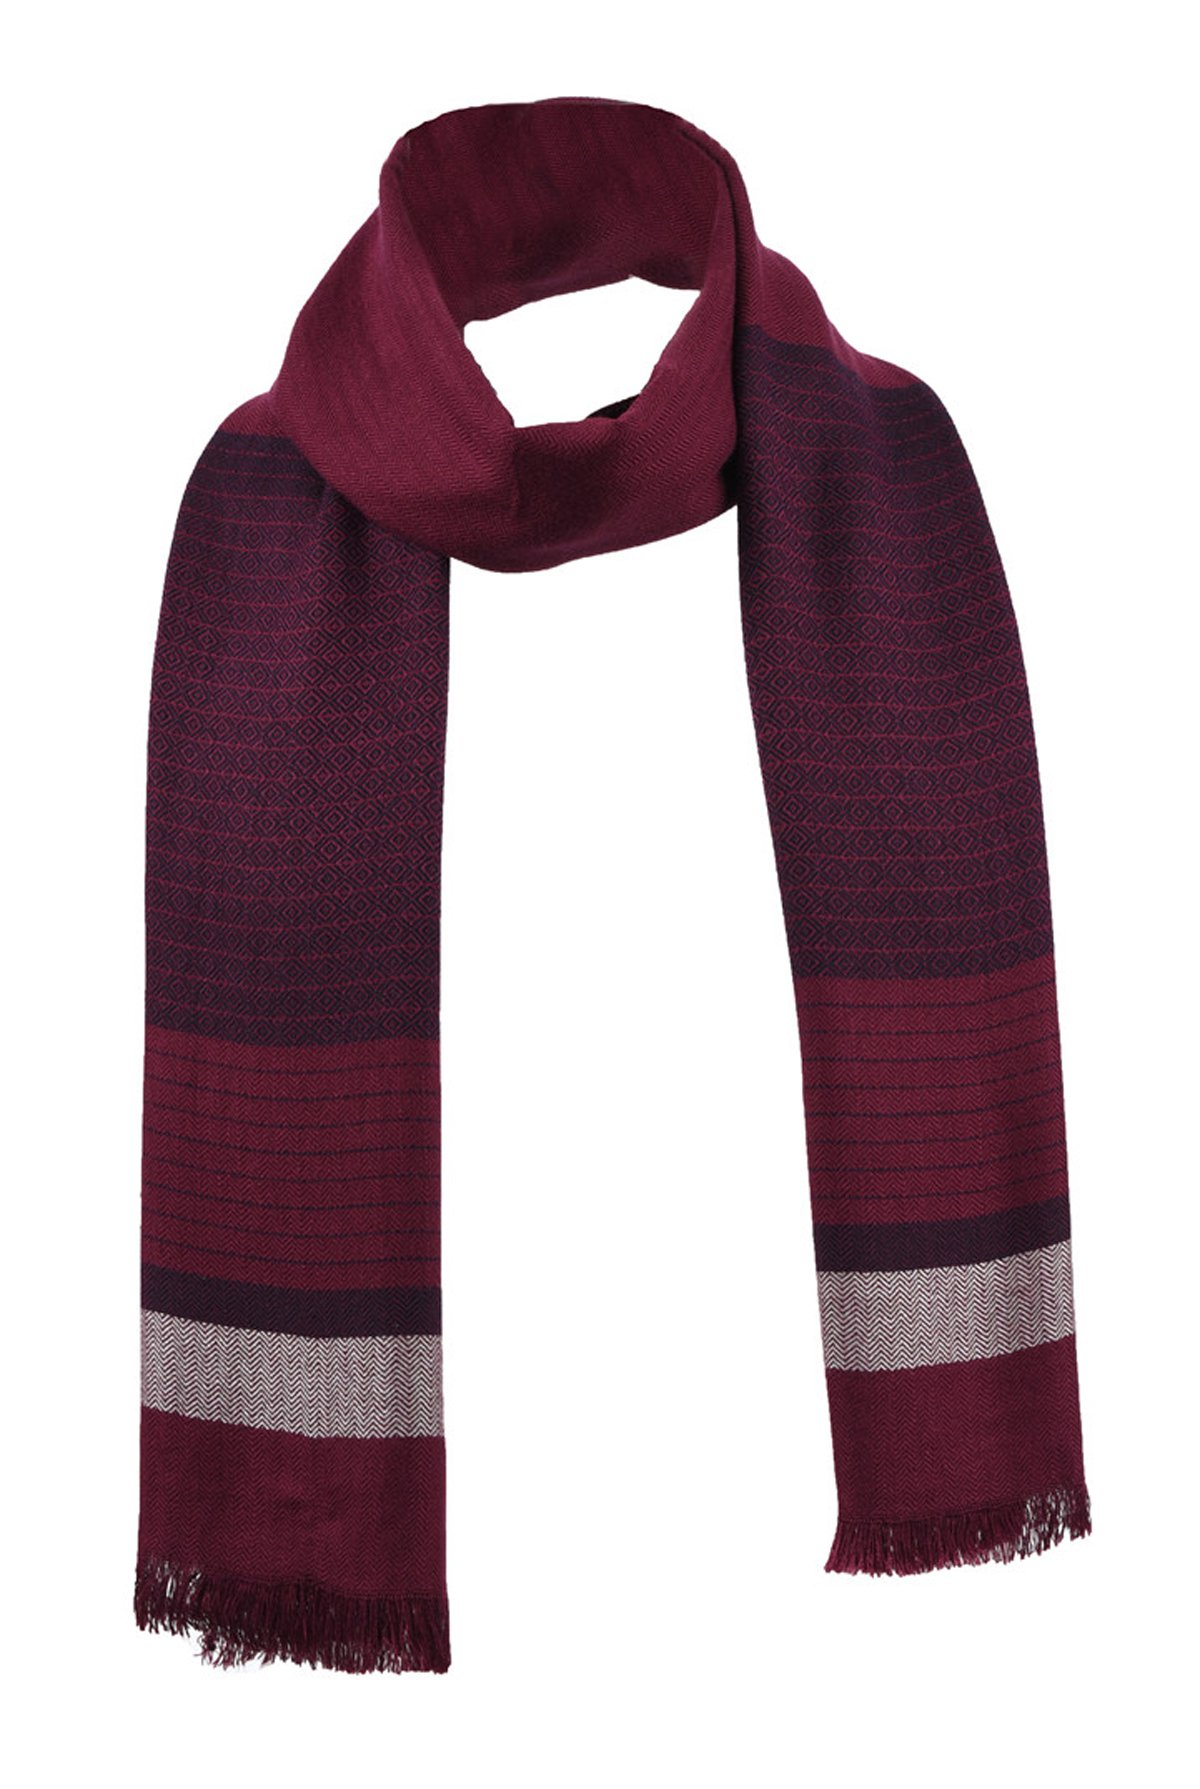 Runtlly Pure Bamboo Fiber Softness Comfortable Scarf(Red)